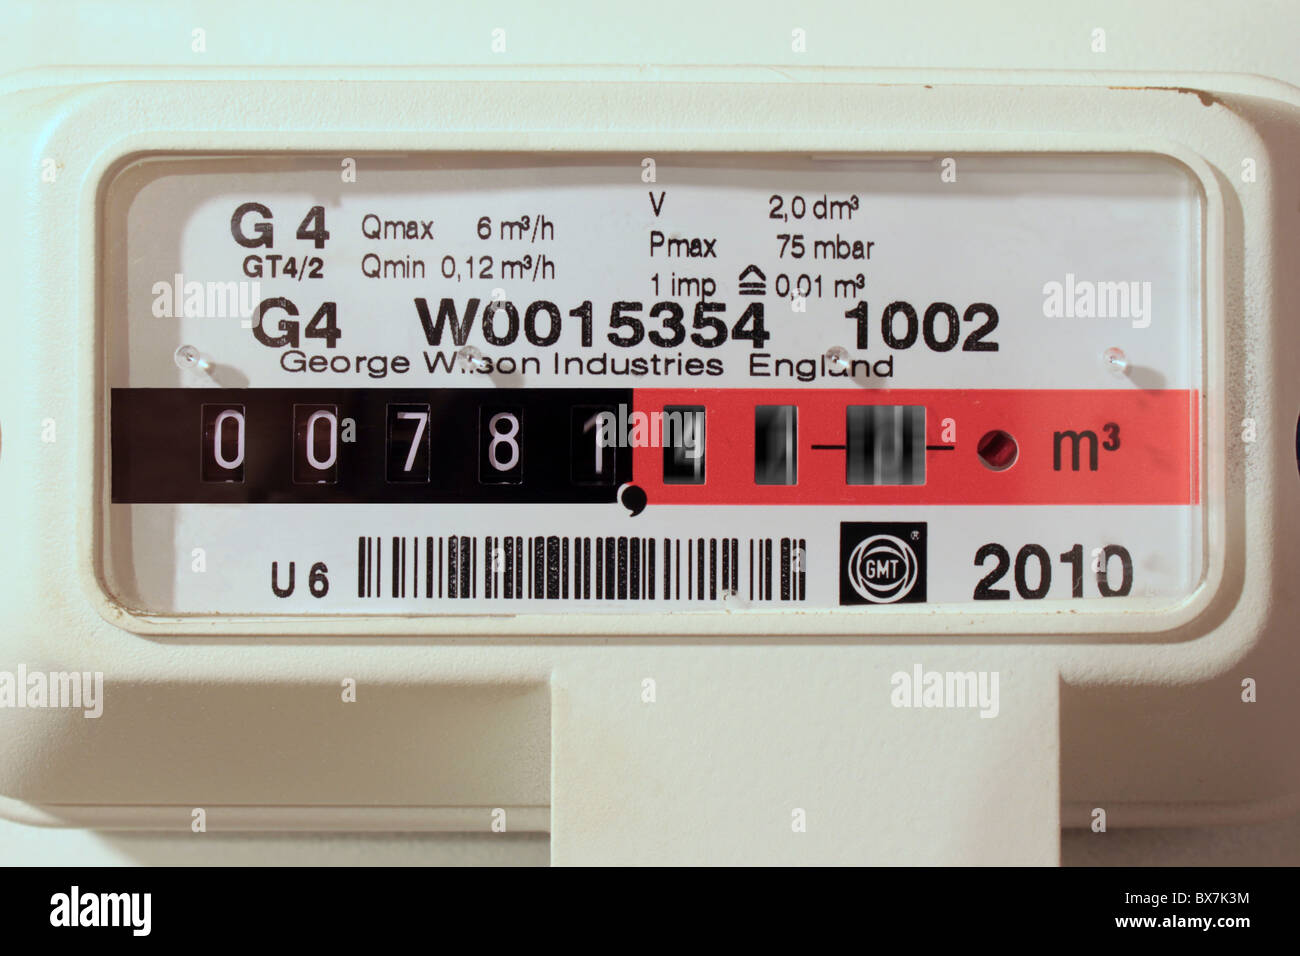 Gas meter with motion blur on digits to imply high consumption - Stock Image